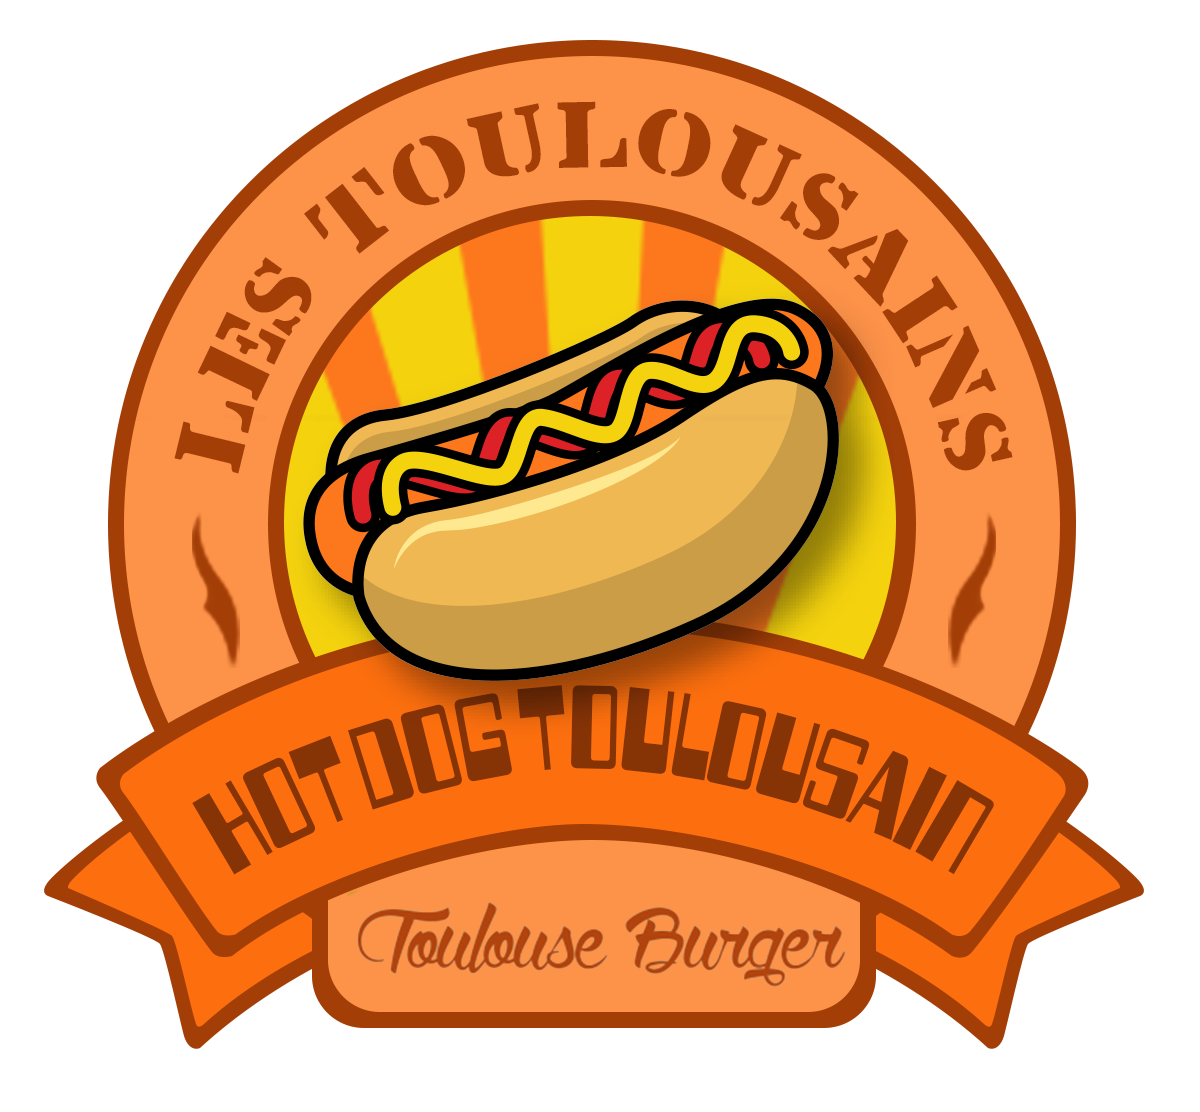 hot-dog-toulousain